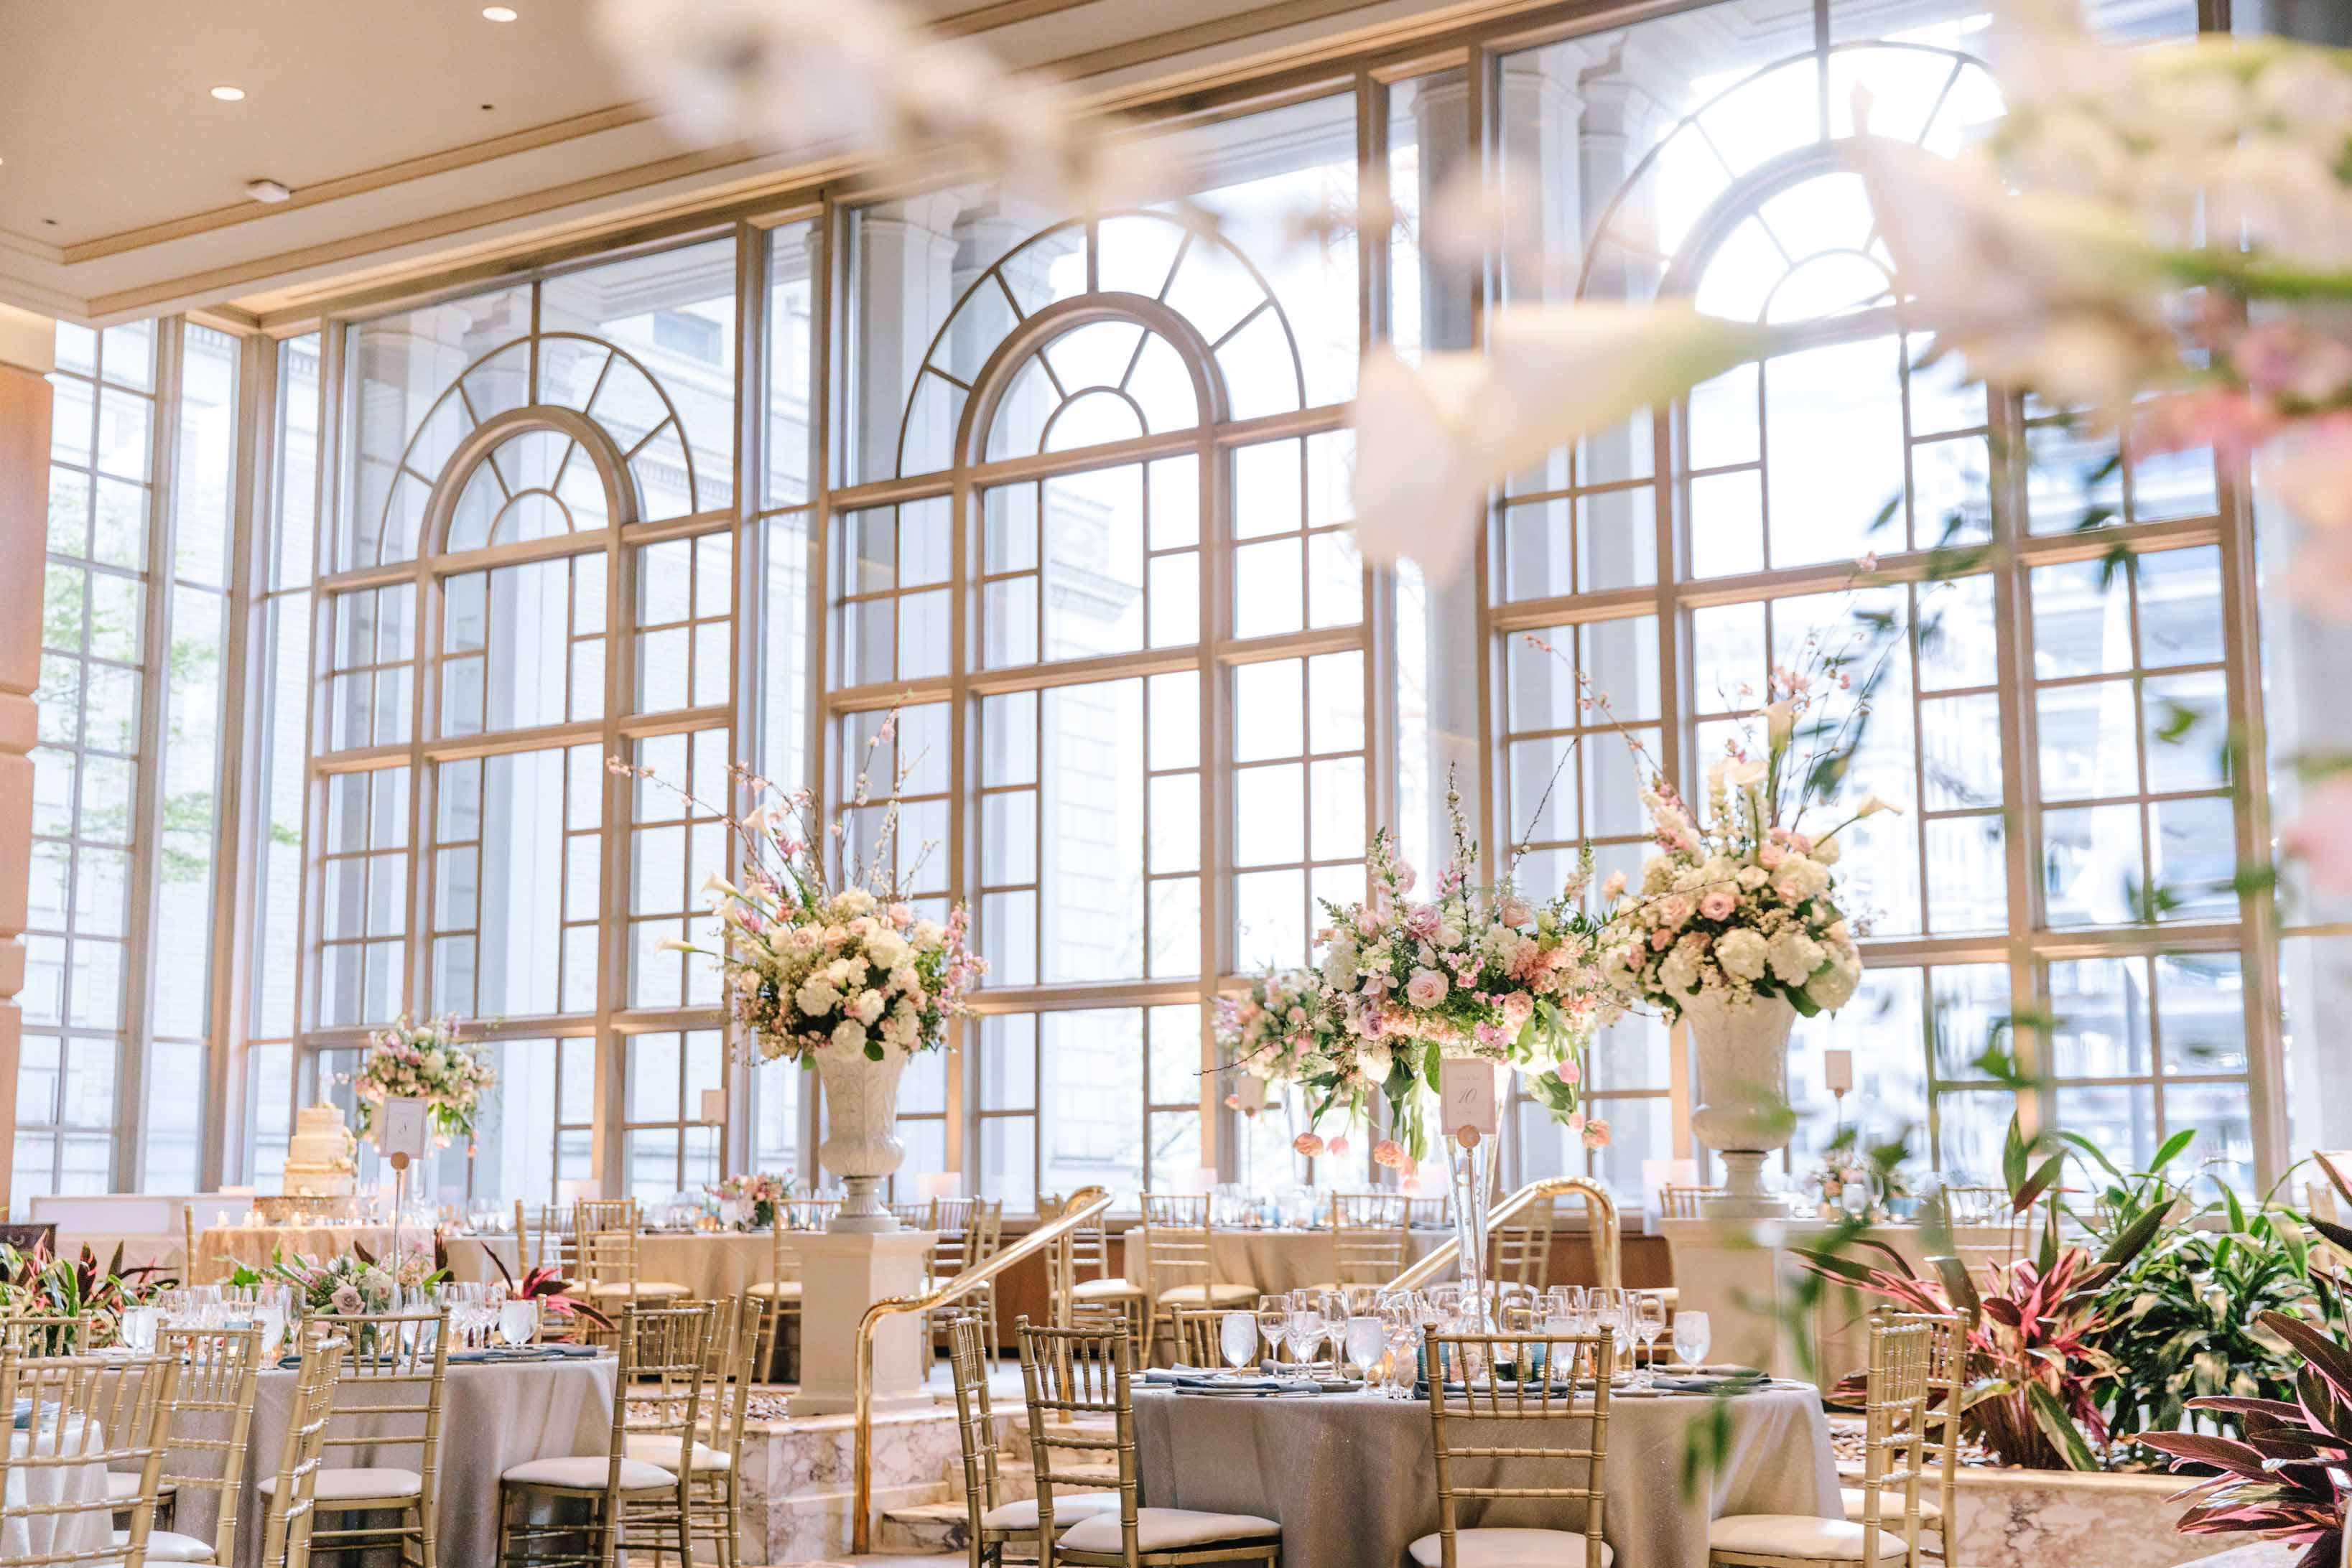 Garden Room of the Fairmont Olympic Hotel decorated with tall centerpieces for a spring garden wedding